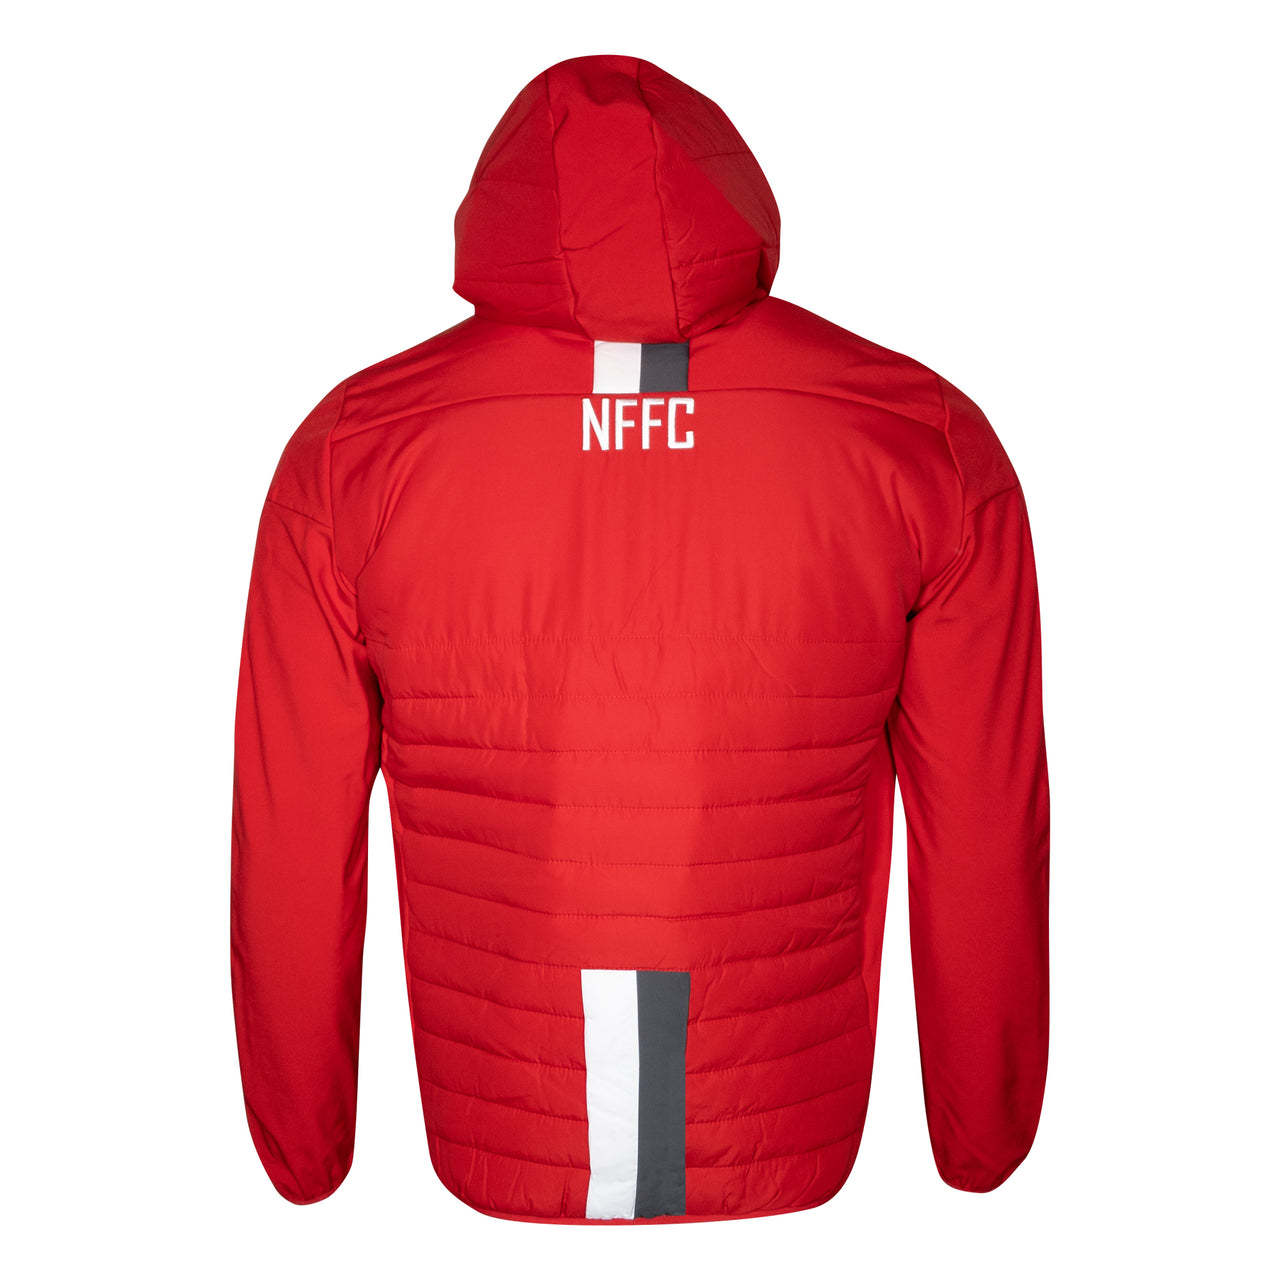 NFFC Junior Red Player Bomber Jacket 19/20